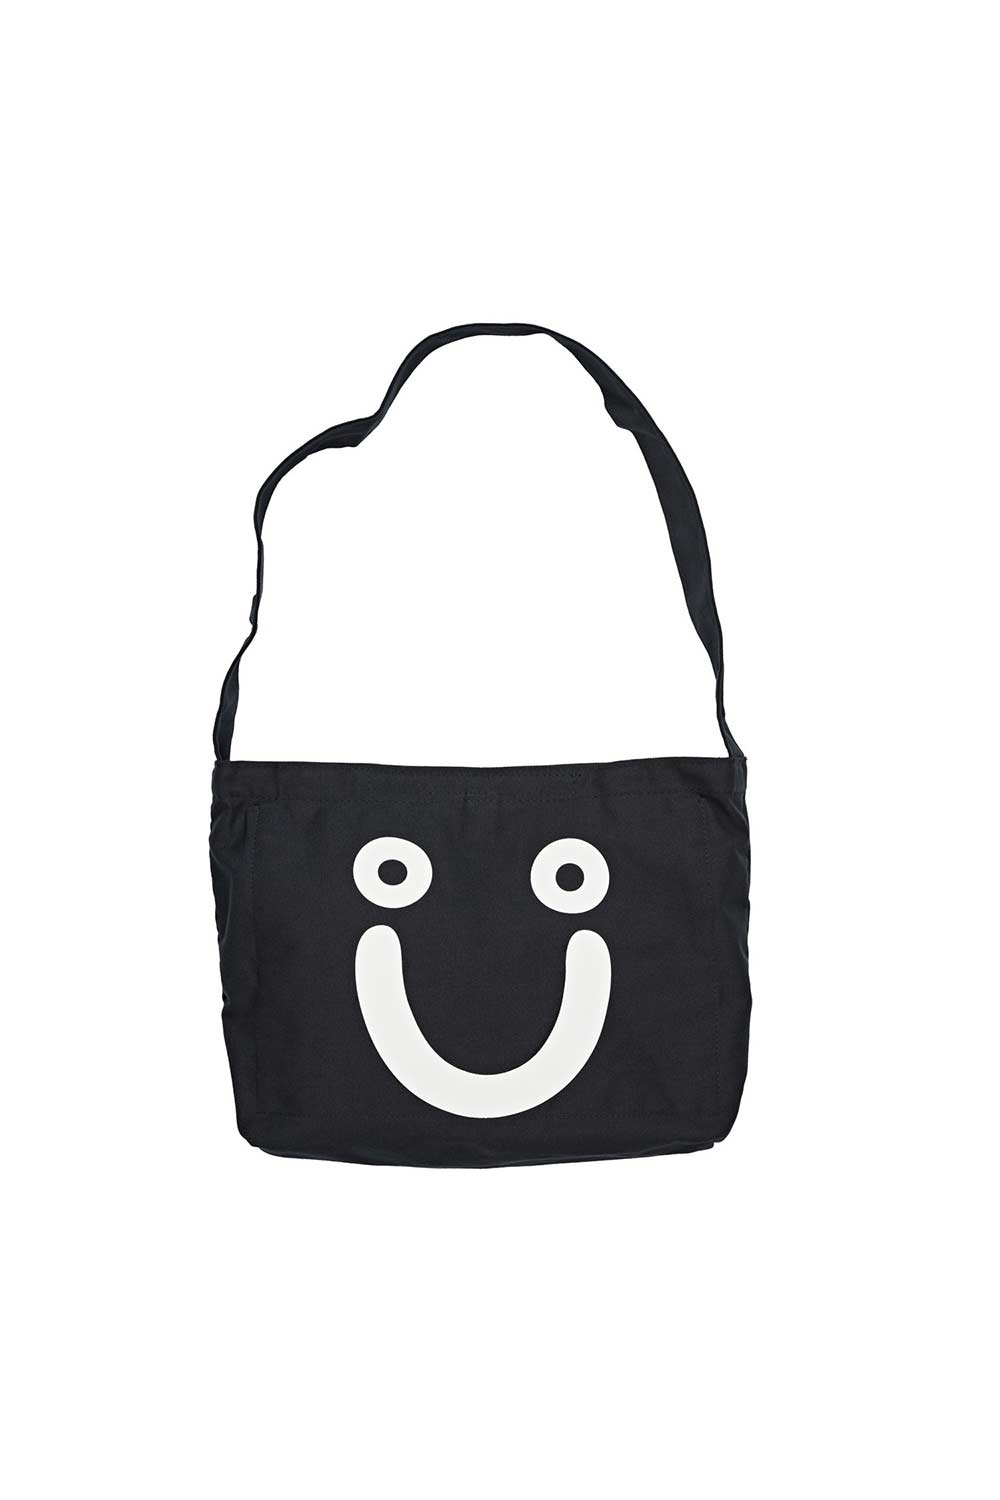 Buy Polar Happy Sad Tote Bag | Buy Polar Skate Co Tote Bag